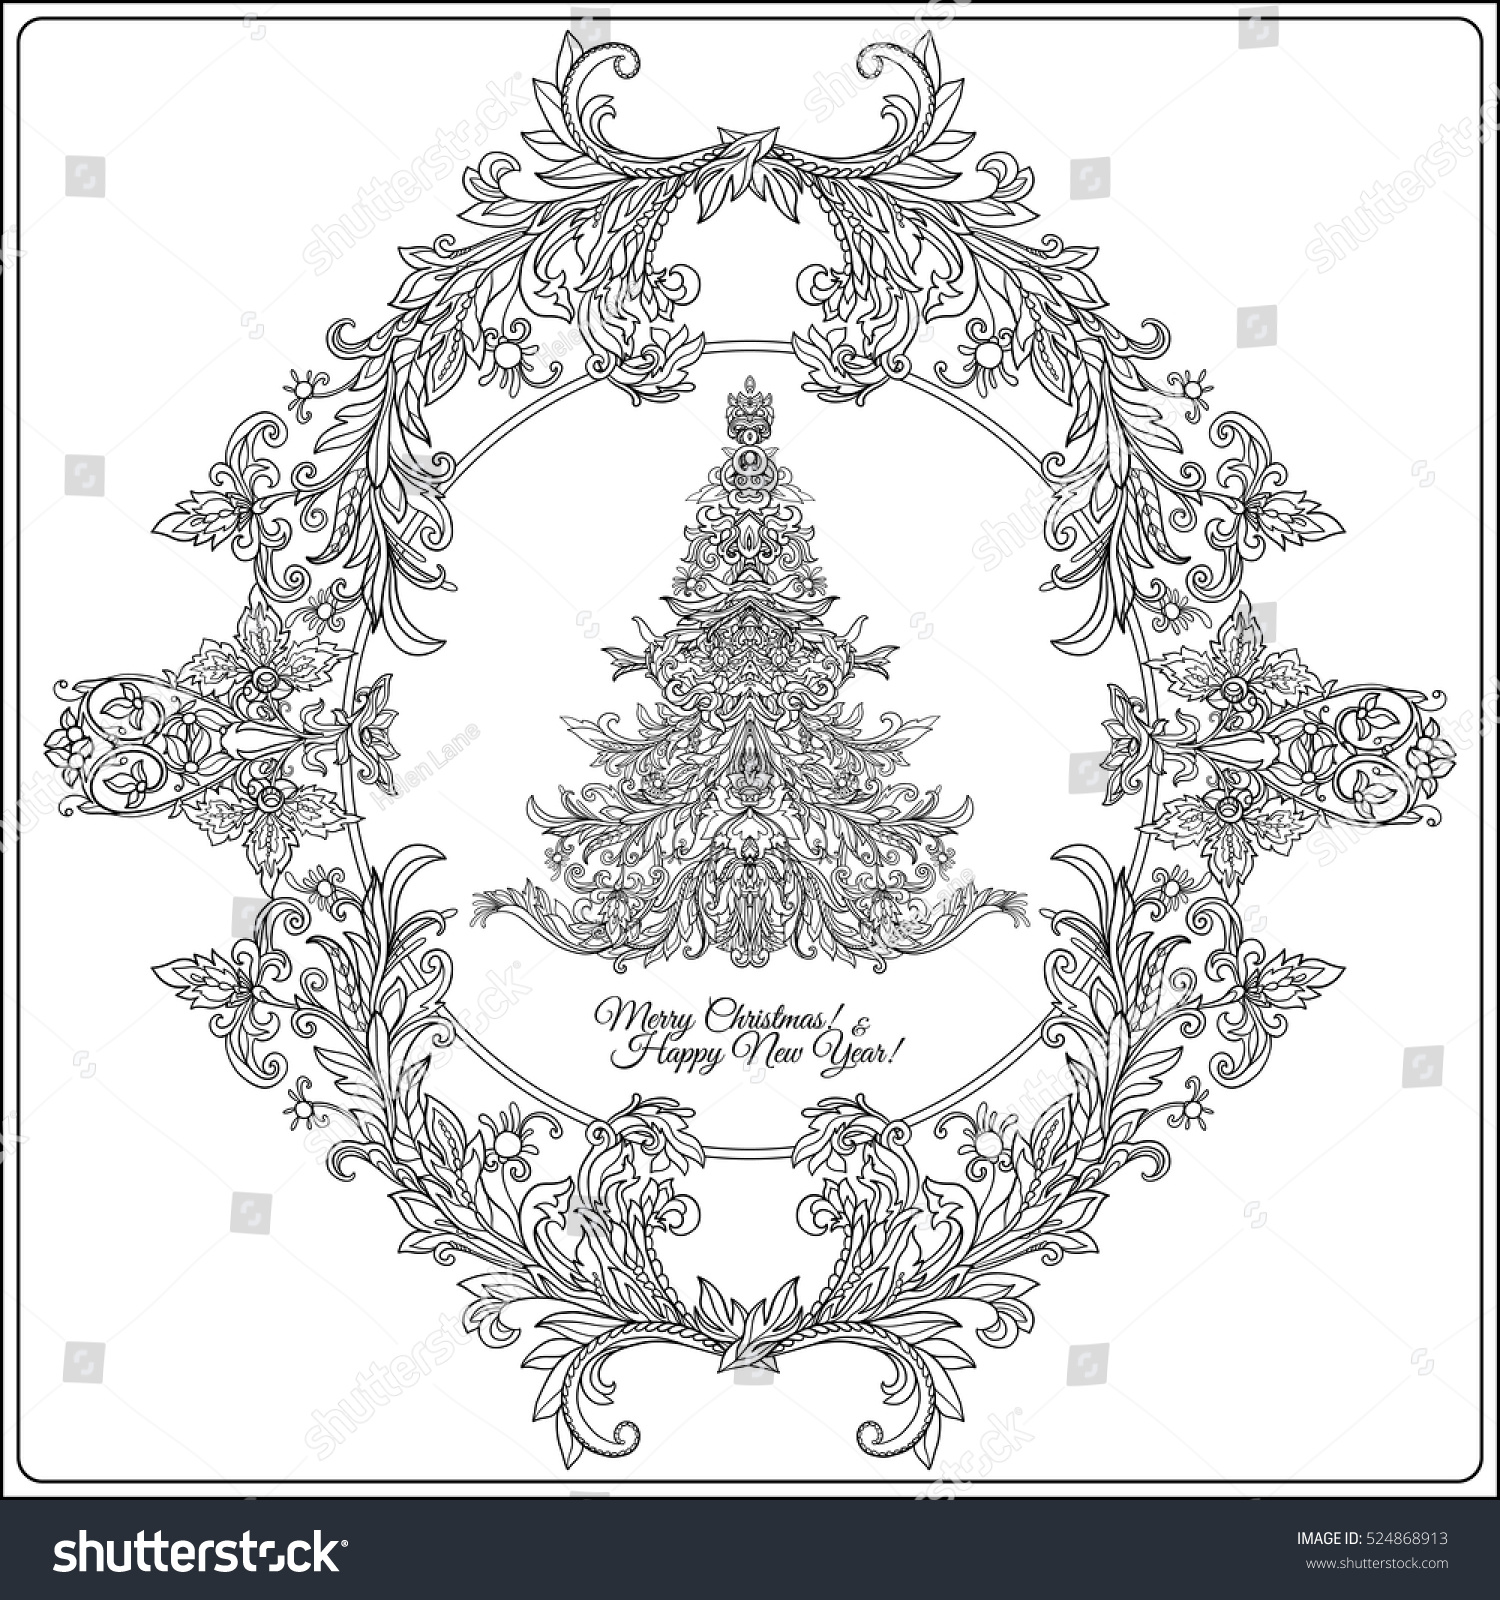 Decorative Christmas Tree Medievalstyle Frame Outline Stock Vector